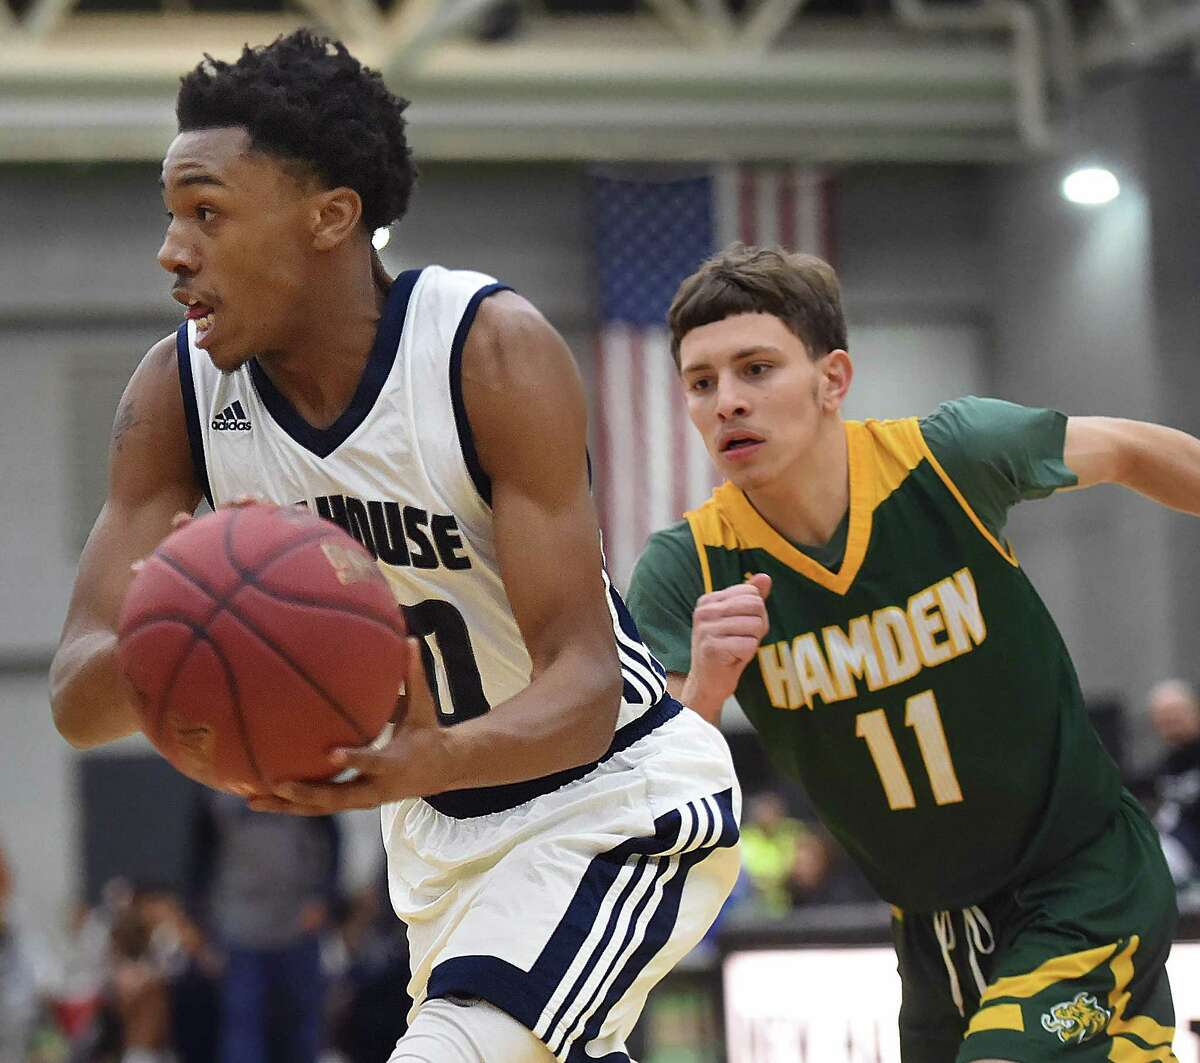 Hillhouse's J'Vaugn Hoover drives past Hamden's Victor Rosario Friday at the Floyd Little Athletic Center in New Haven. Hillhouse won 59-56.